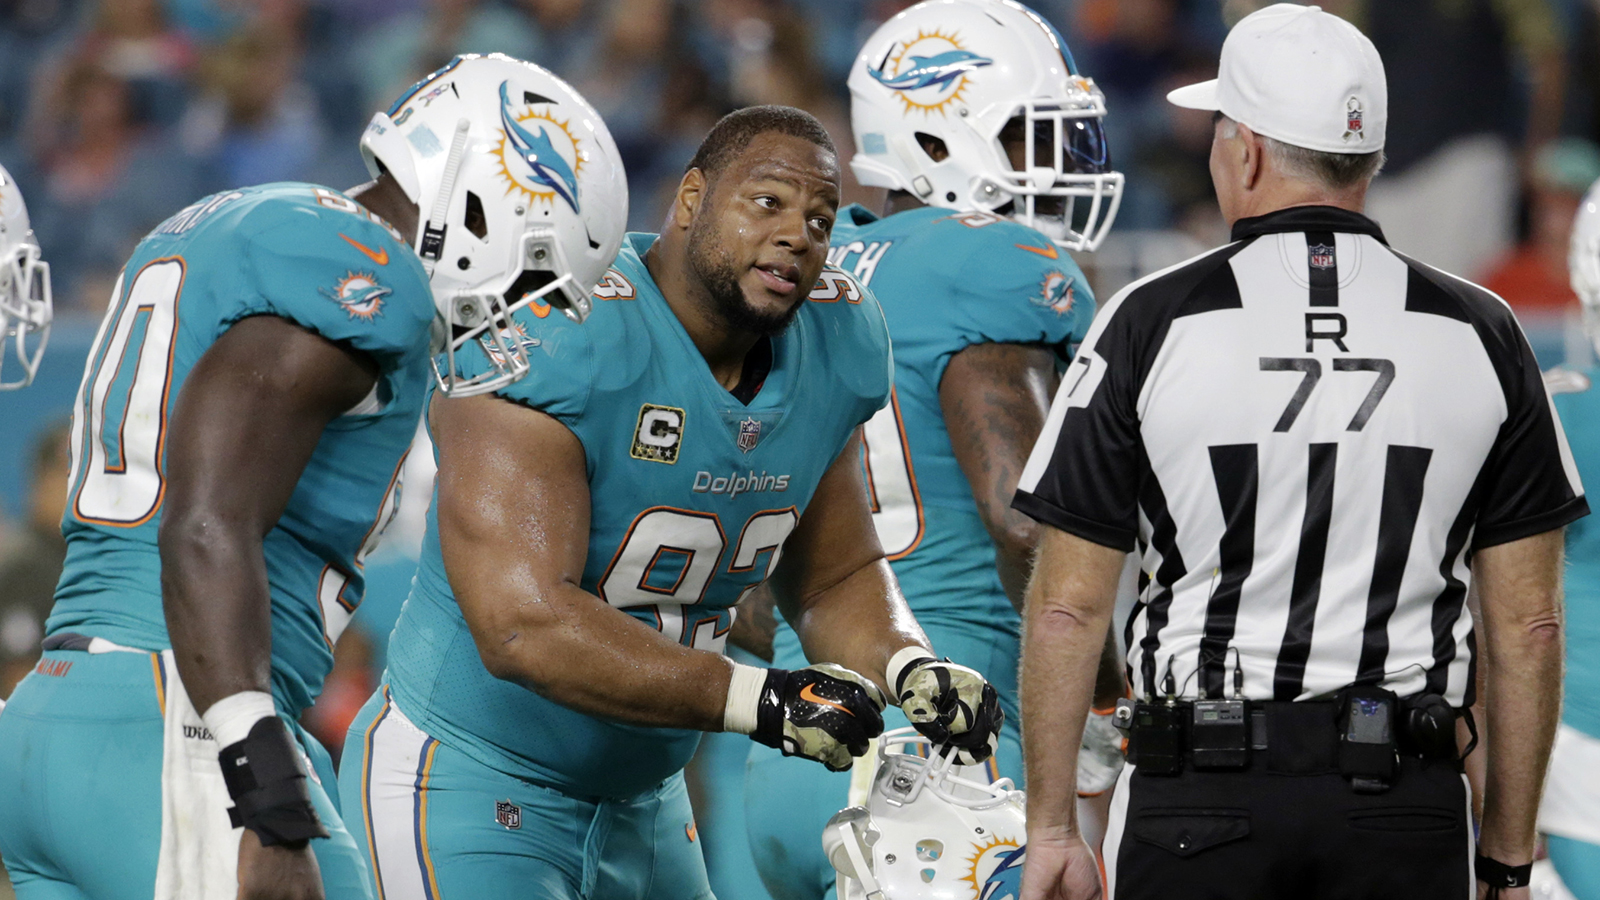 Rams sign defensive tackle Ndamukong Suh to one-year deal